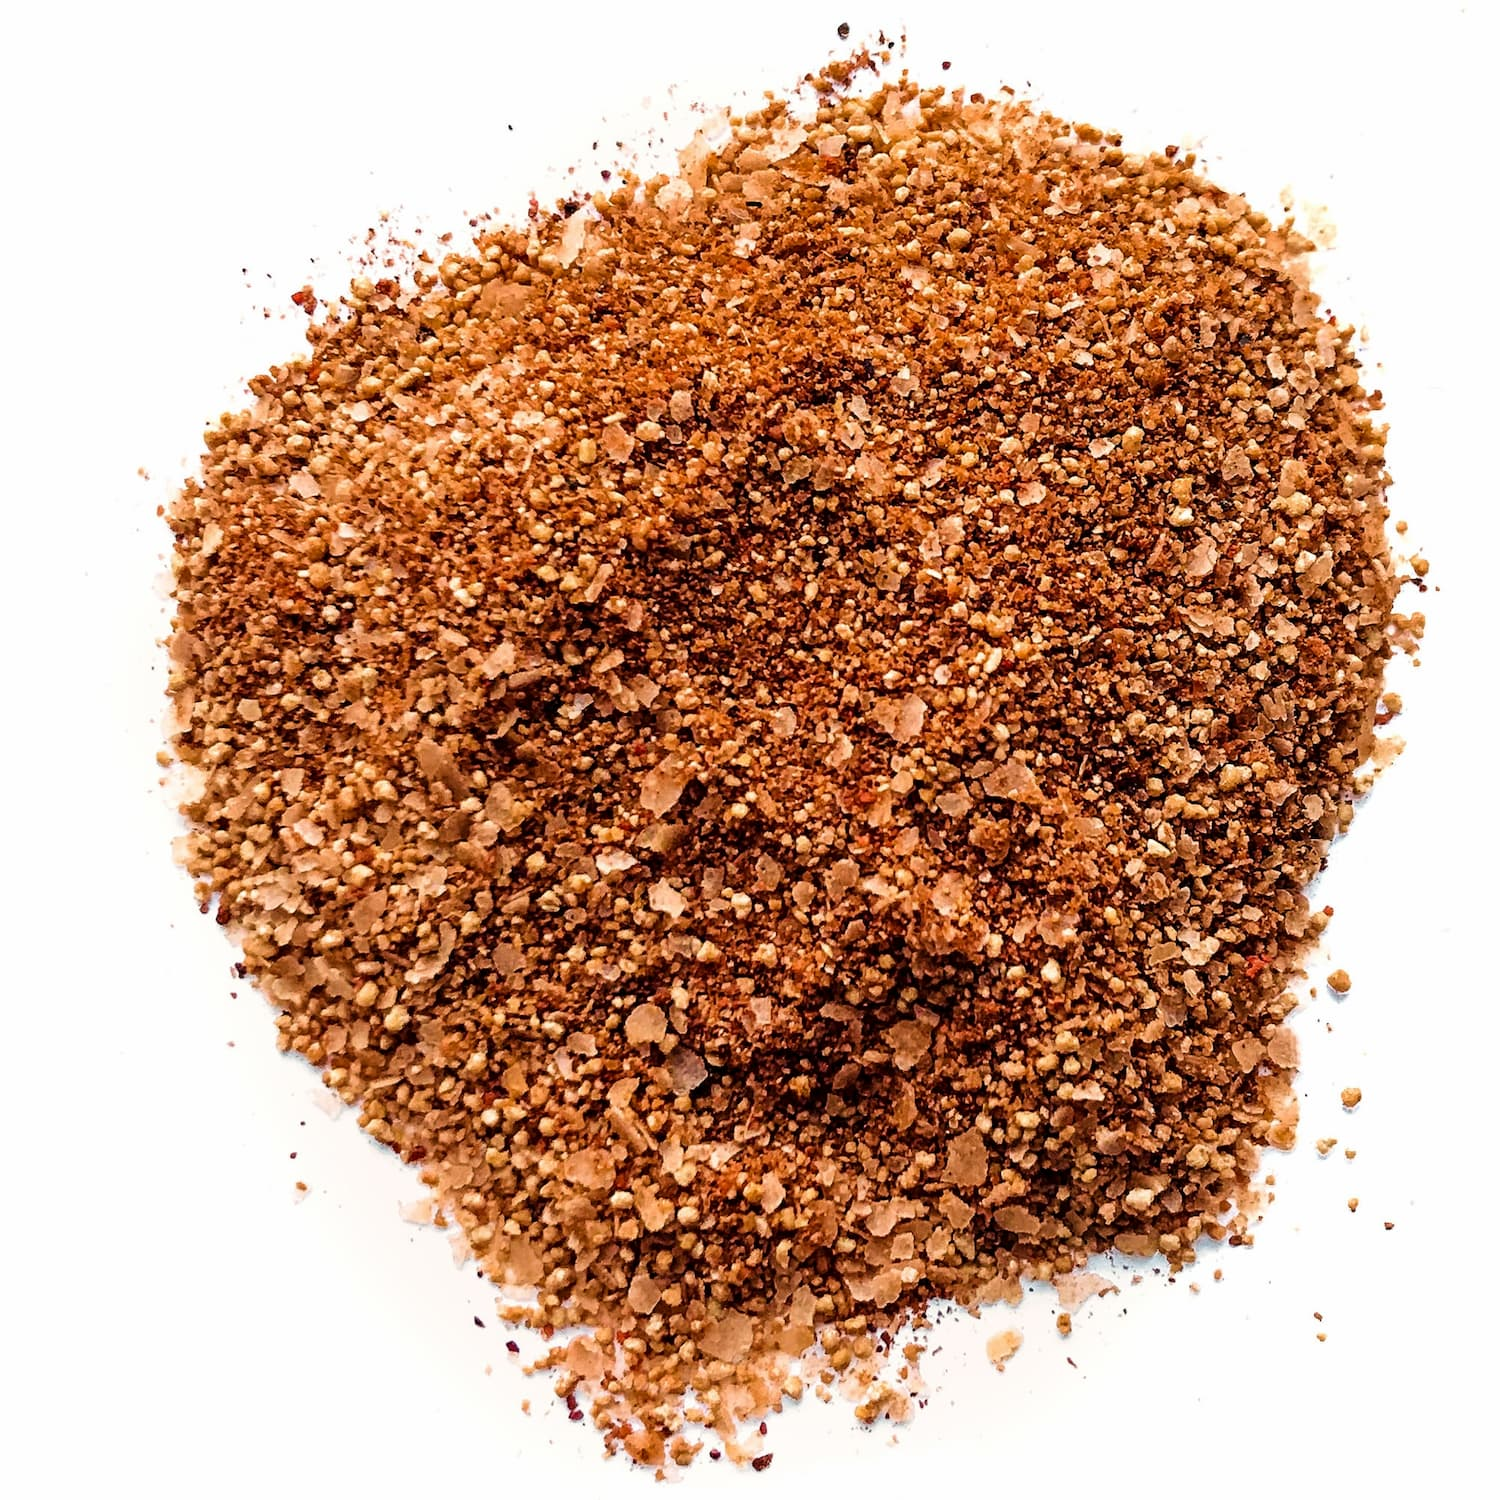 Kansas City Southern BBQ Rub Seasoning Ingredients.jpg